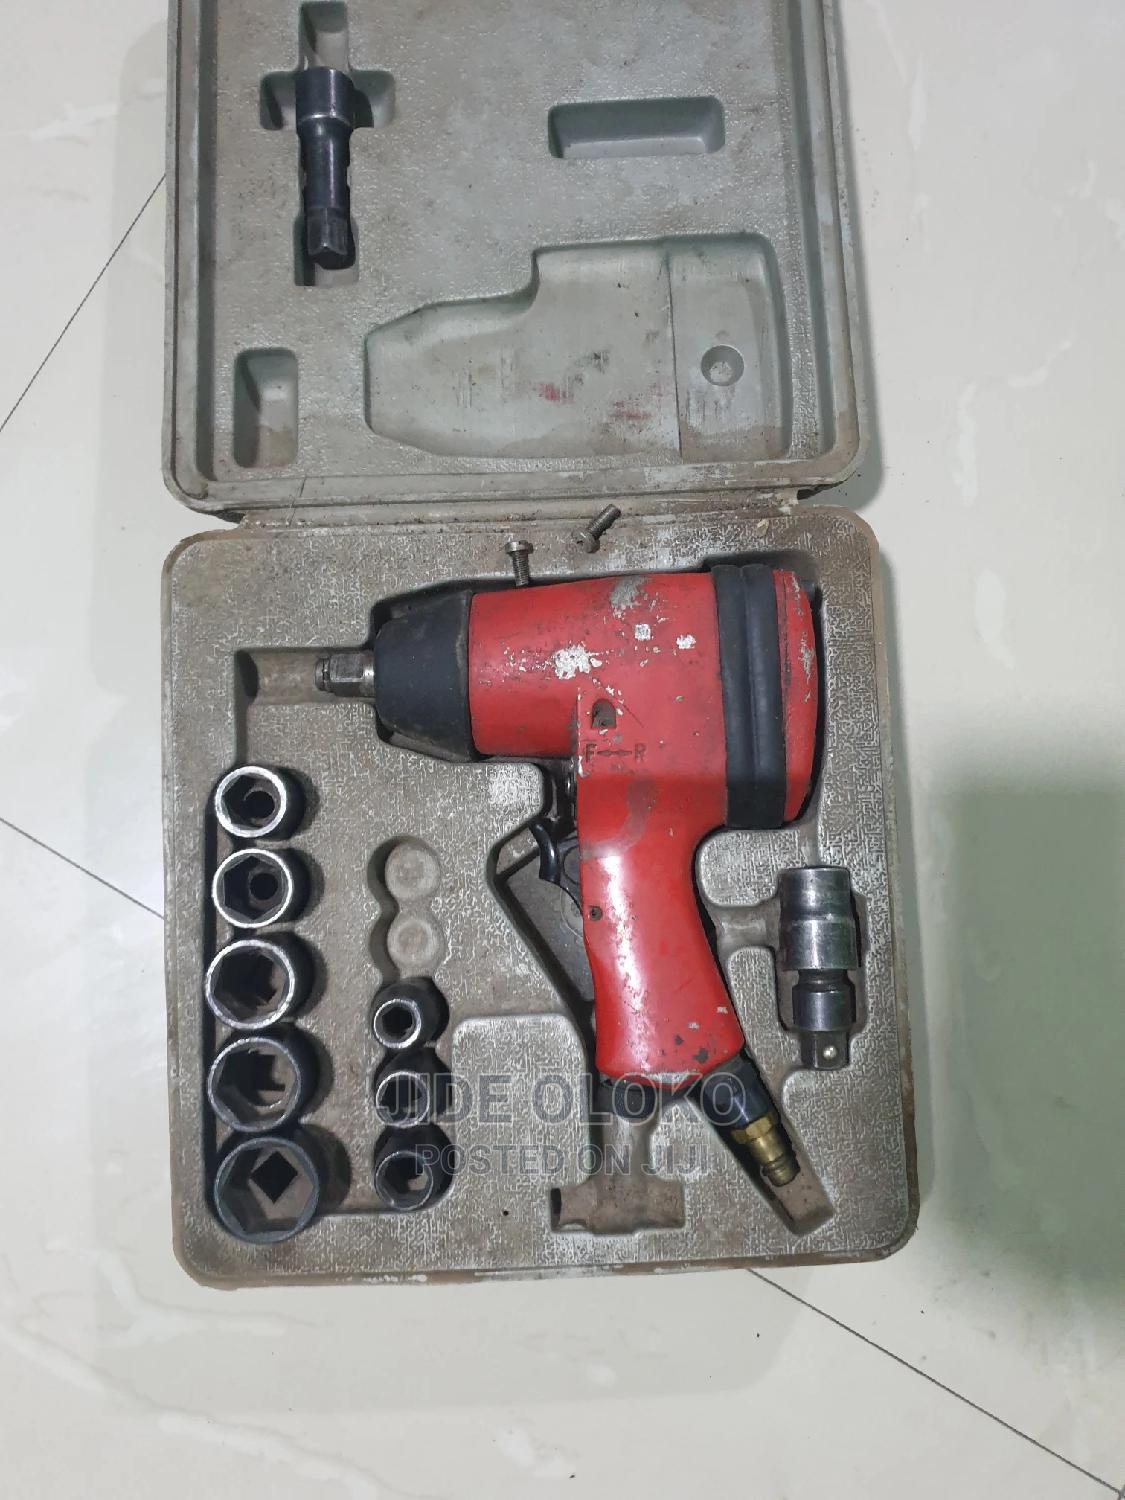 Pnematic Impact Wrench